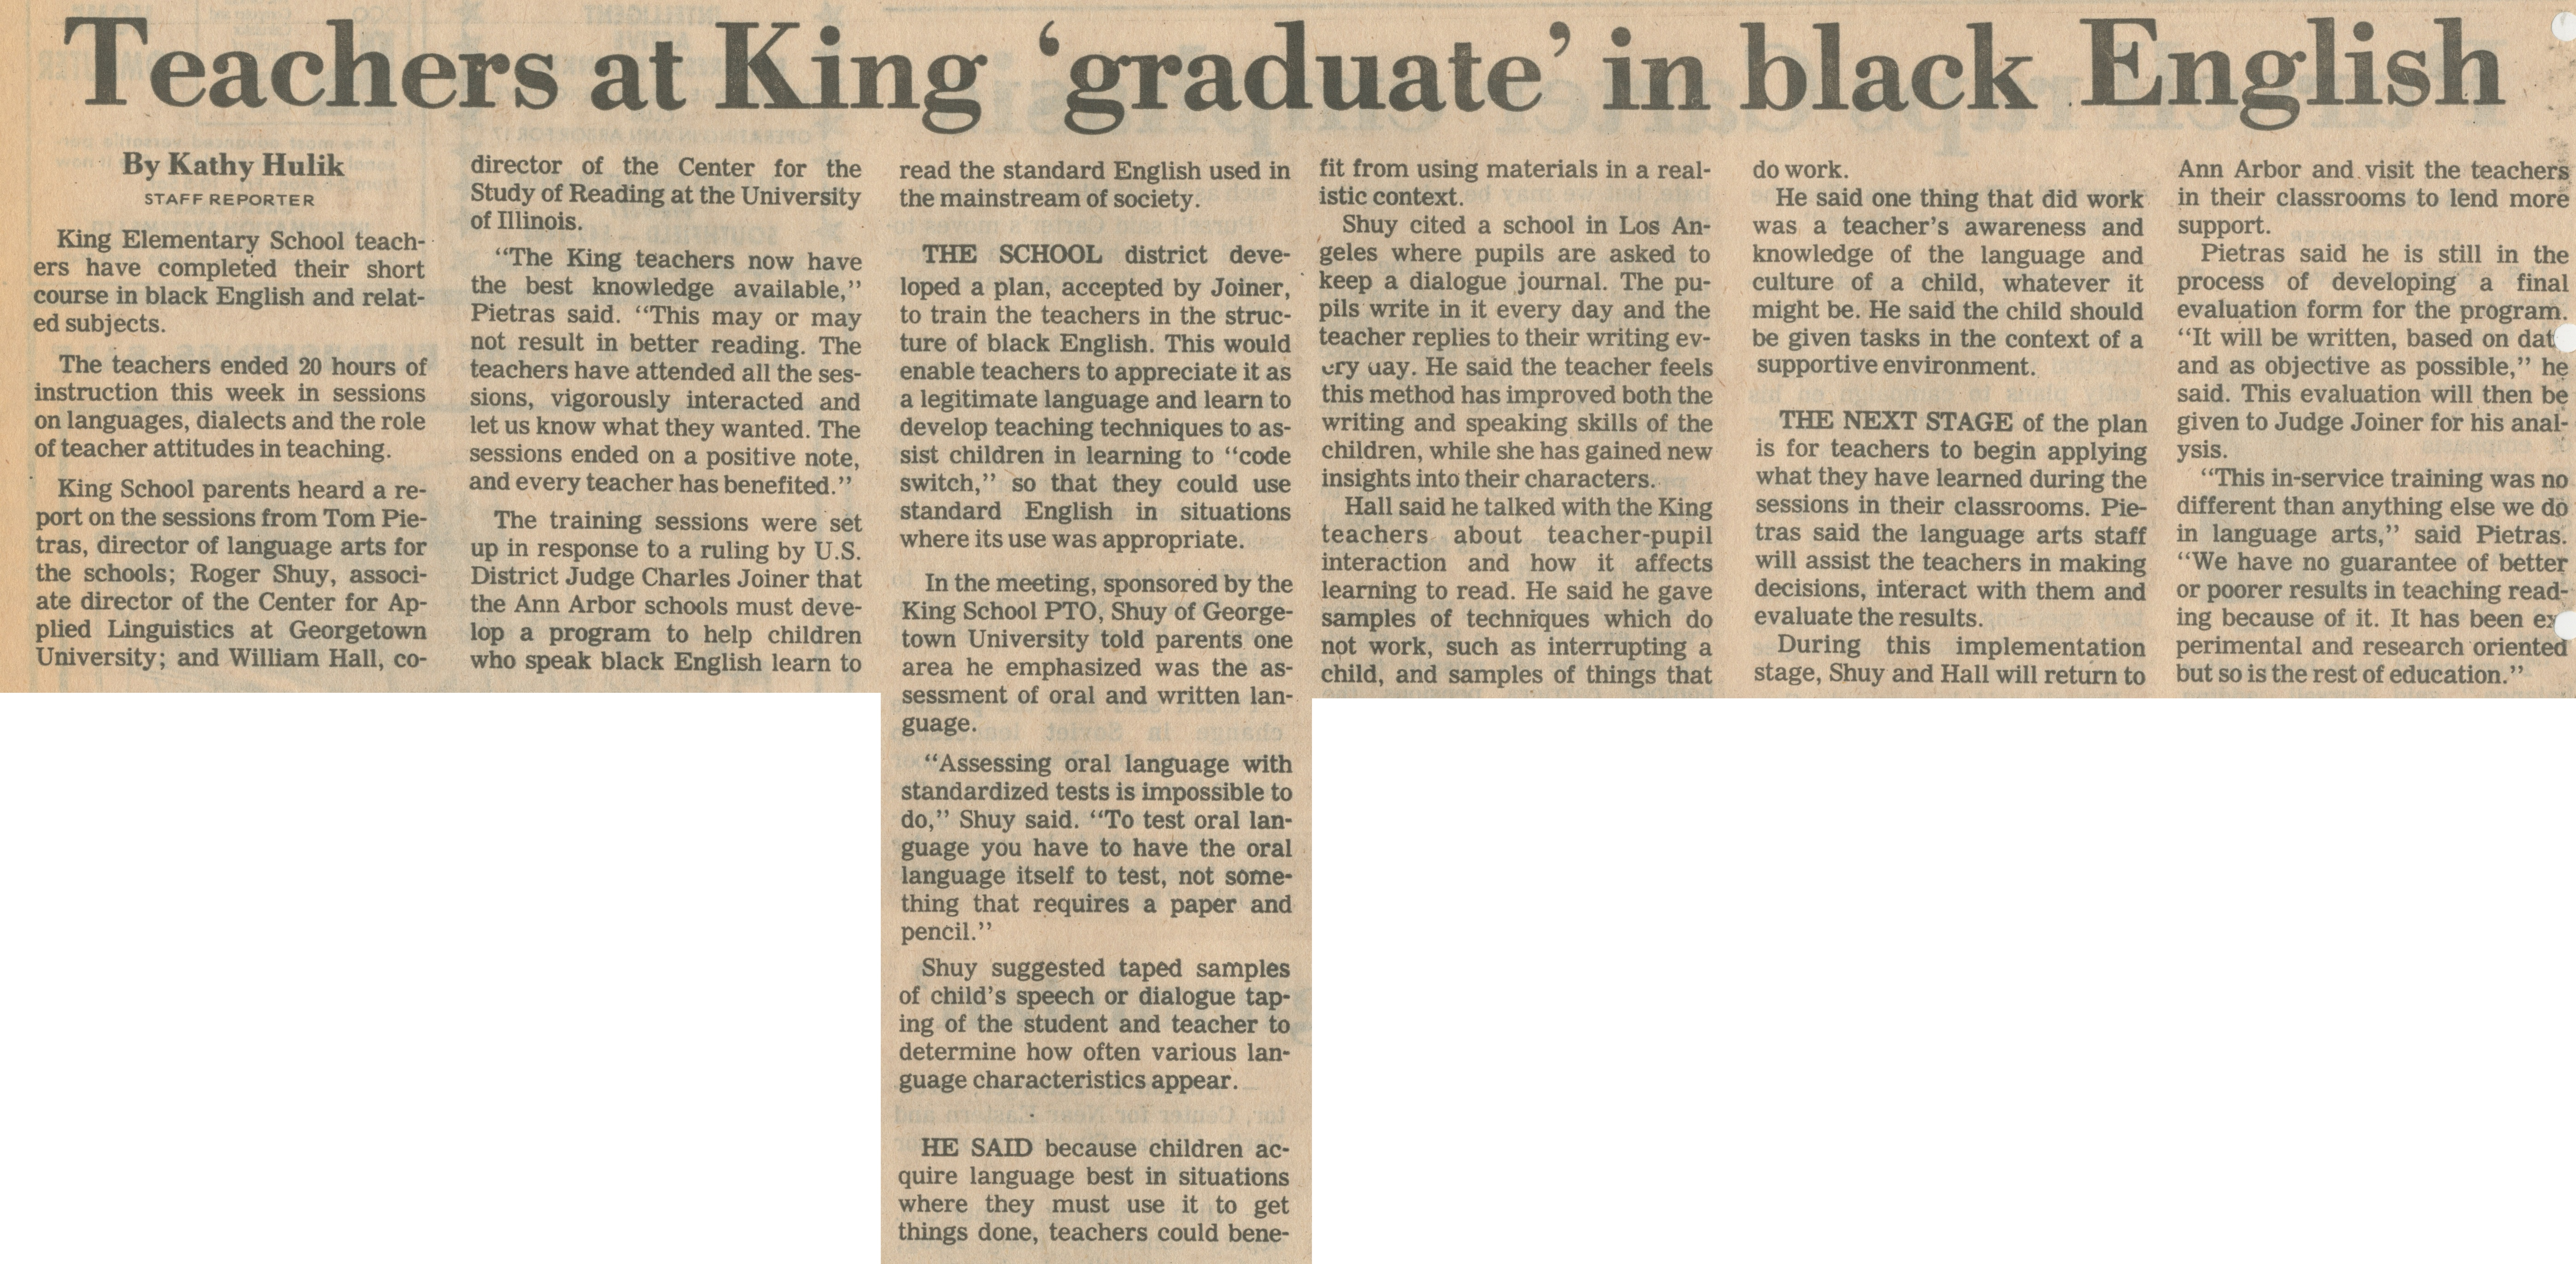 Teachers At King 'Graduate' In Black English image